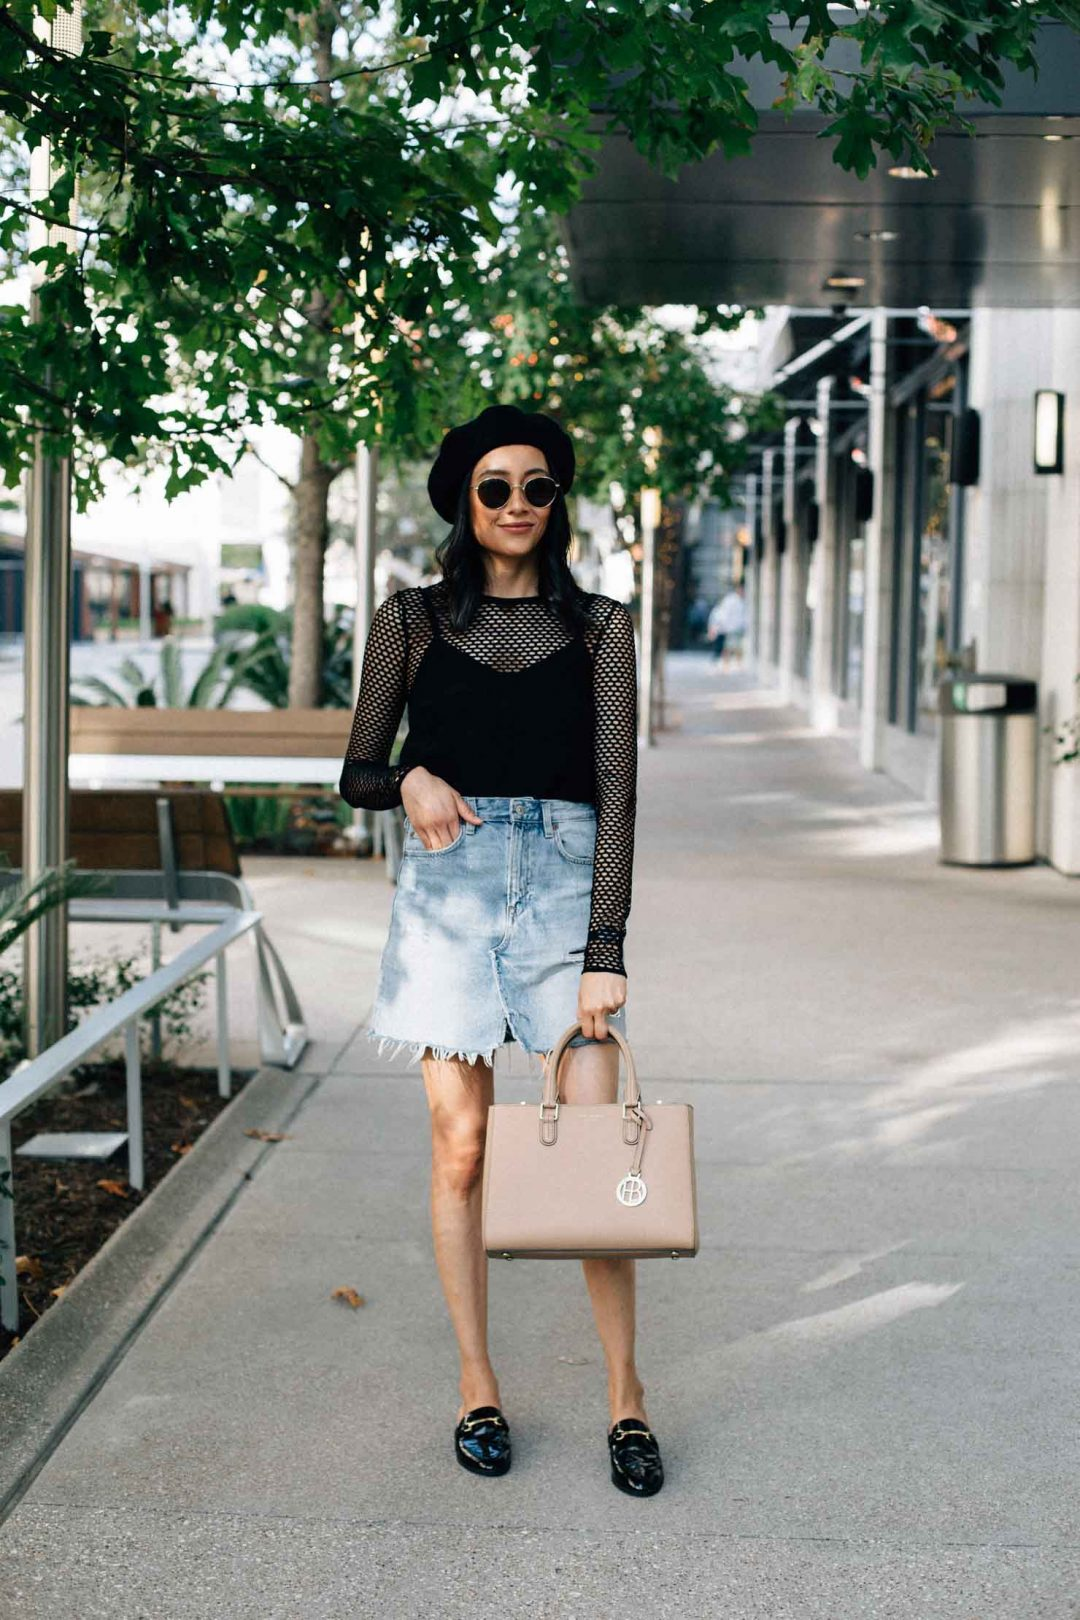 Lilly Beltran of Daily Craving styles a denim skirt with a mesh top and black beret for a Parisian inspired look